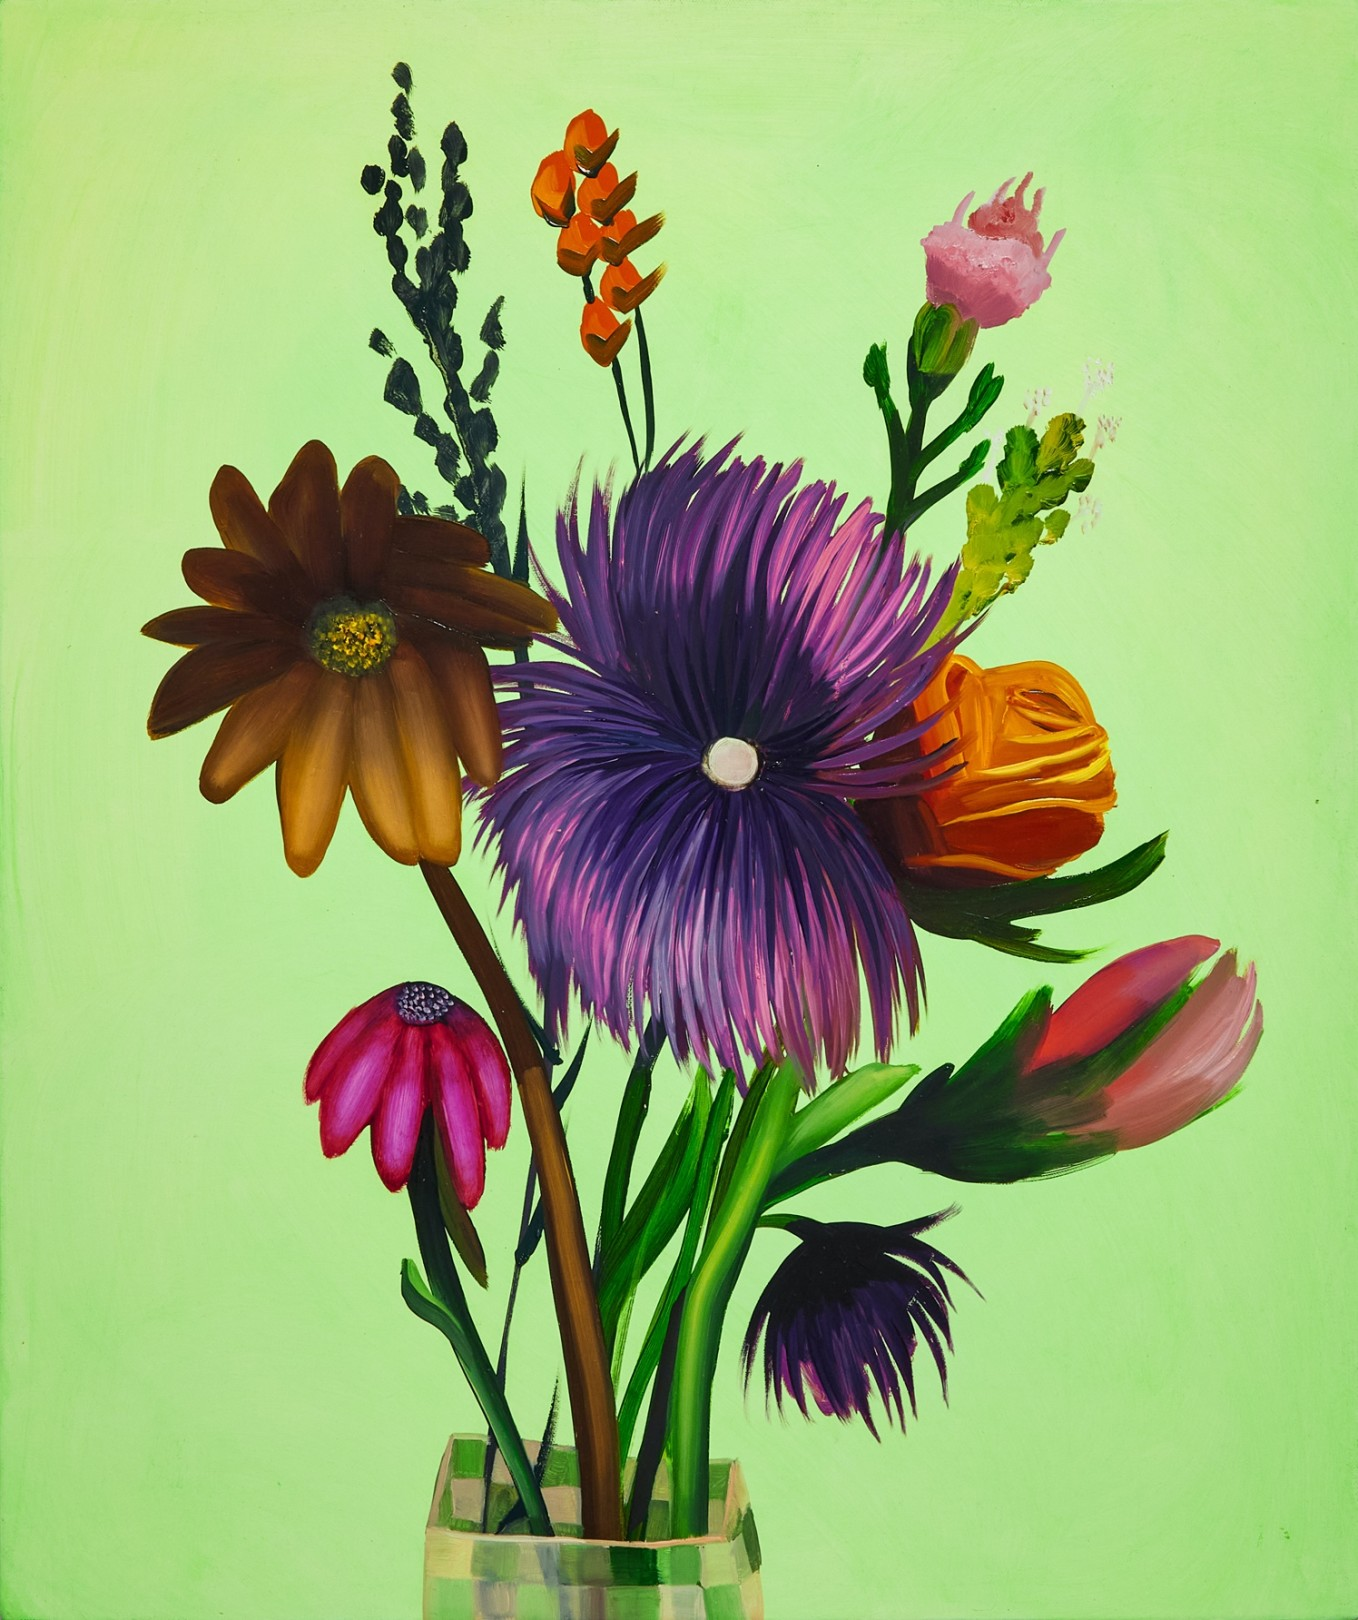 Bouquet #3, 2021 Oil on canvas 61 x 51 cm. / 24 x 20 in.